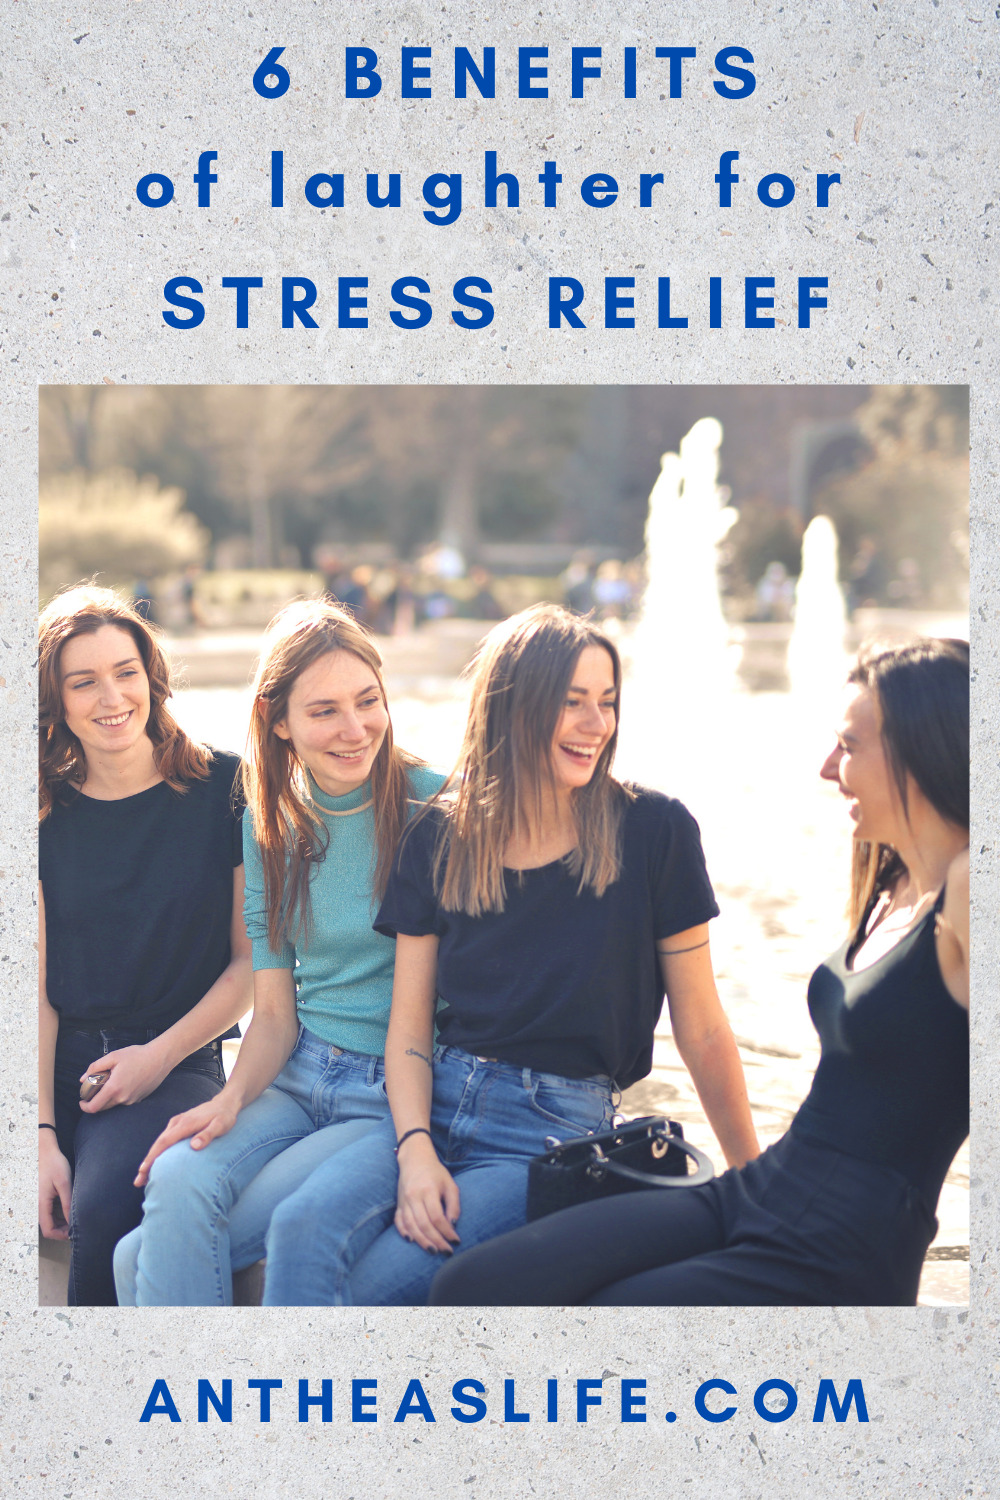 benefits-of-laughter-for-stress-relief